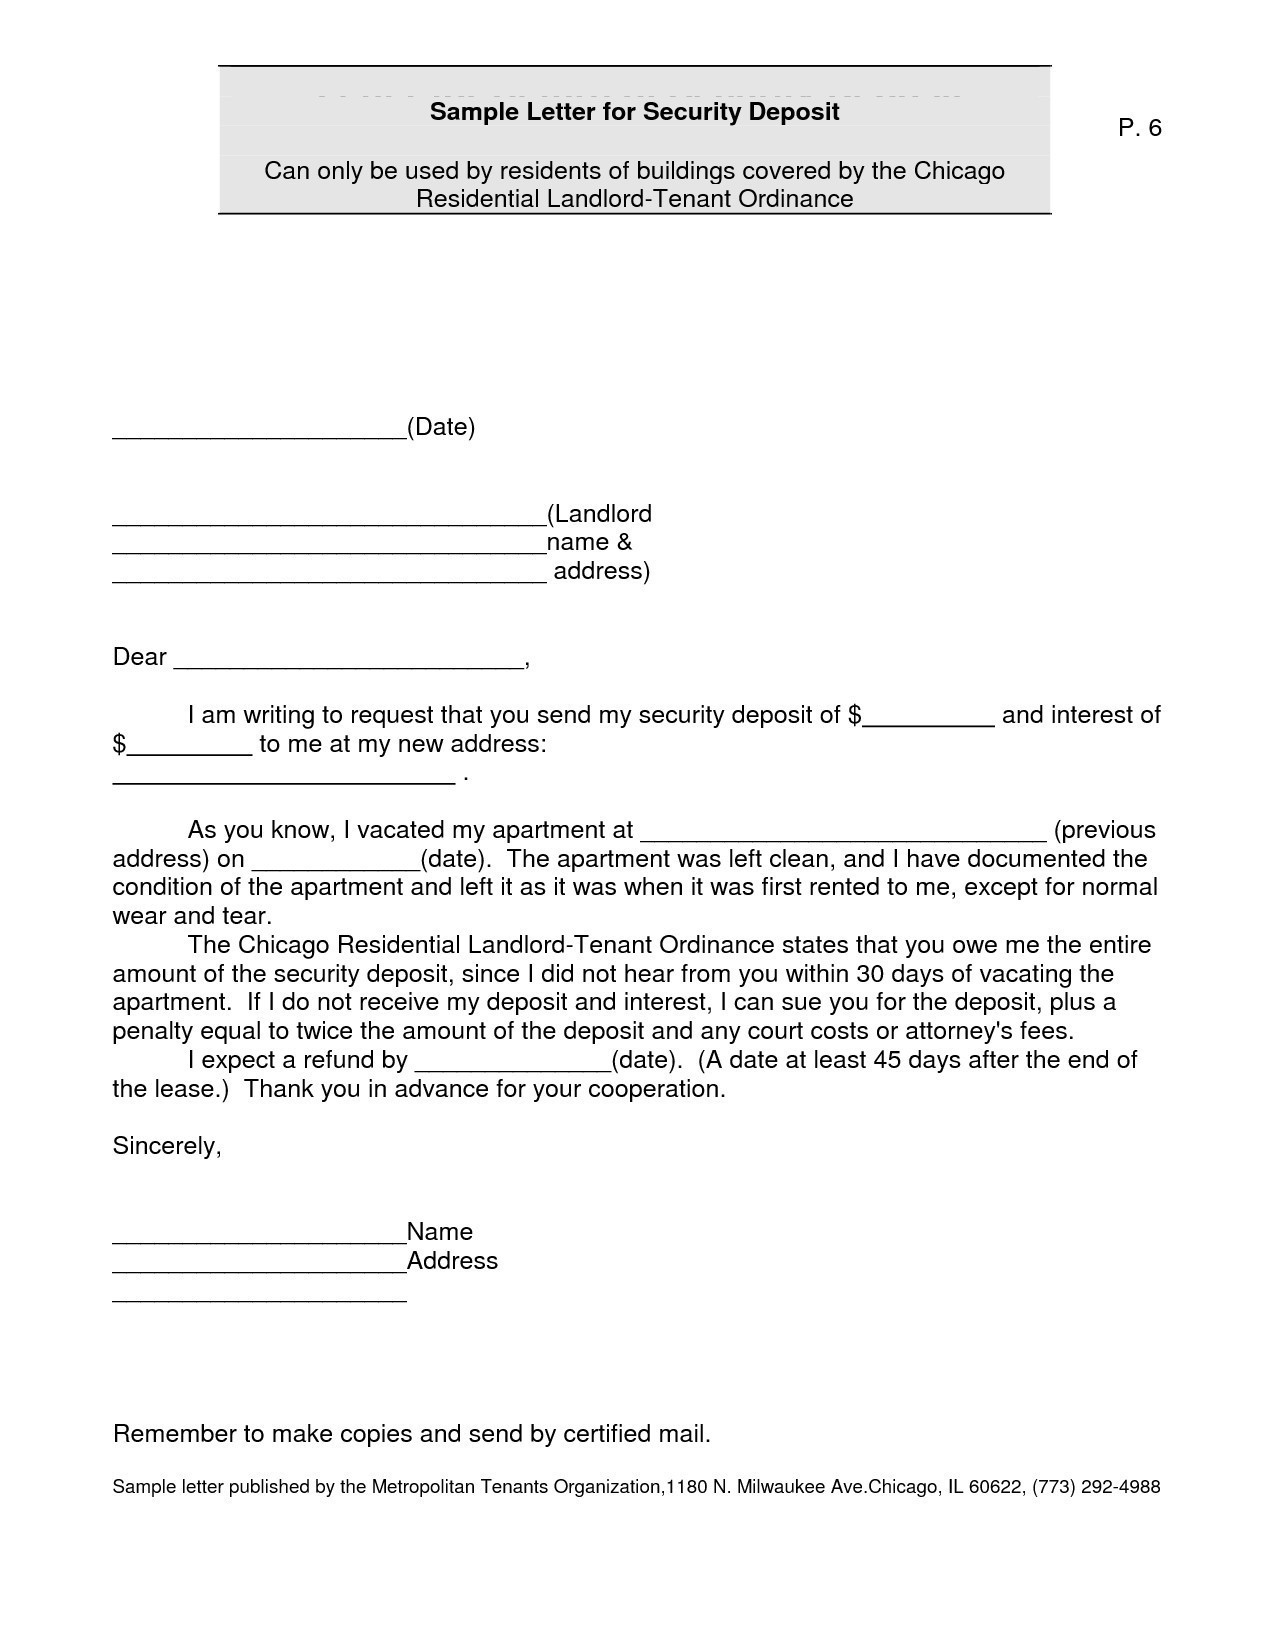 Security Deposit Refund Letter Template - New Refund Letter Best Letter format for Requesting A Refund Best